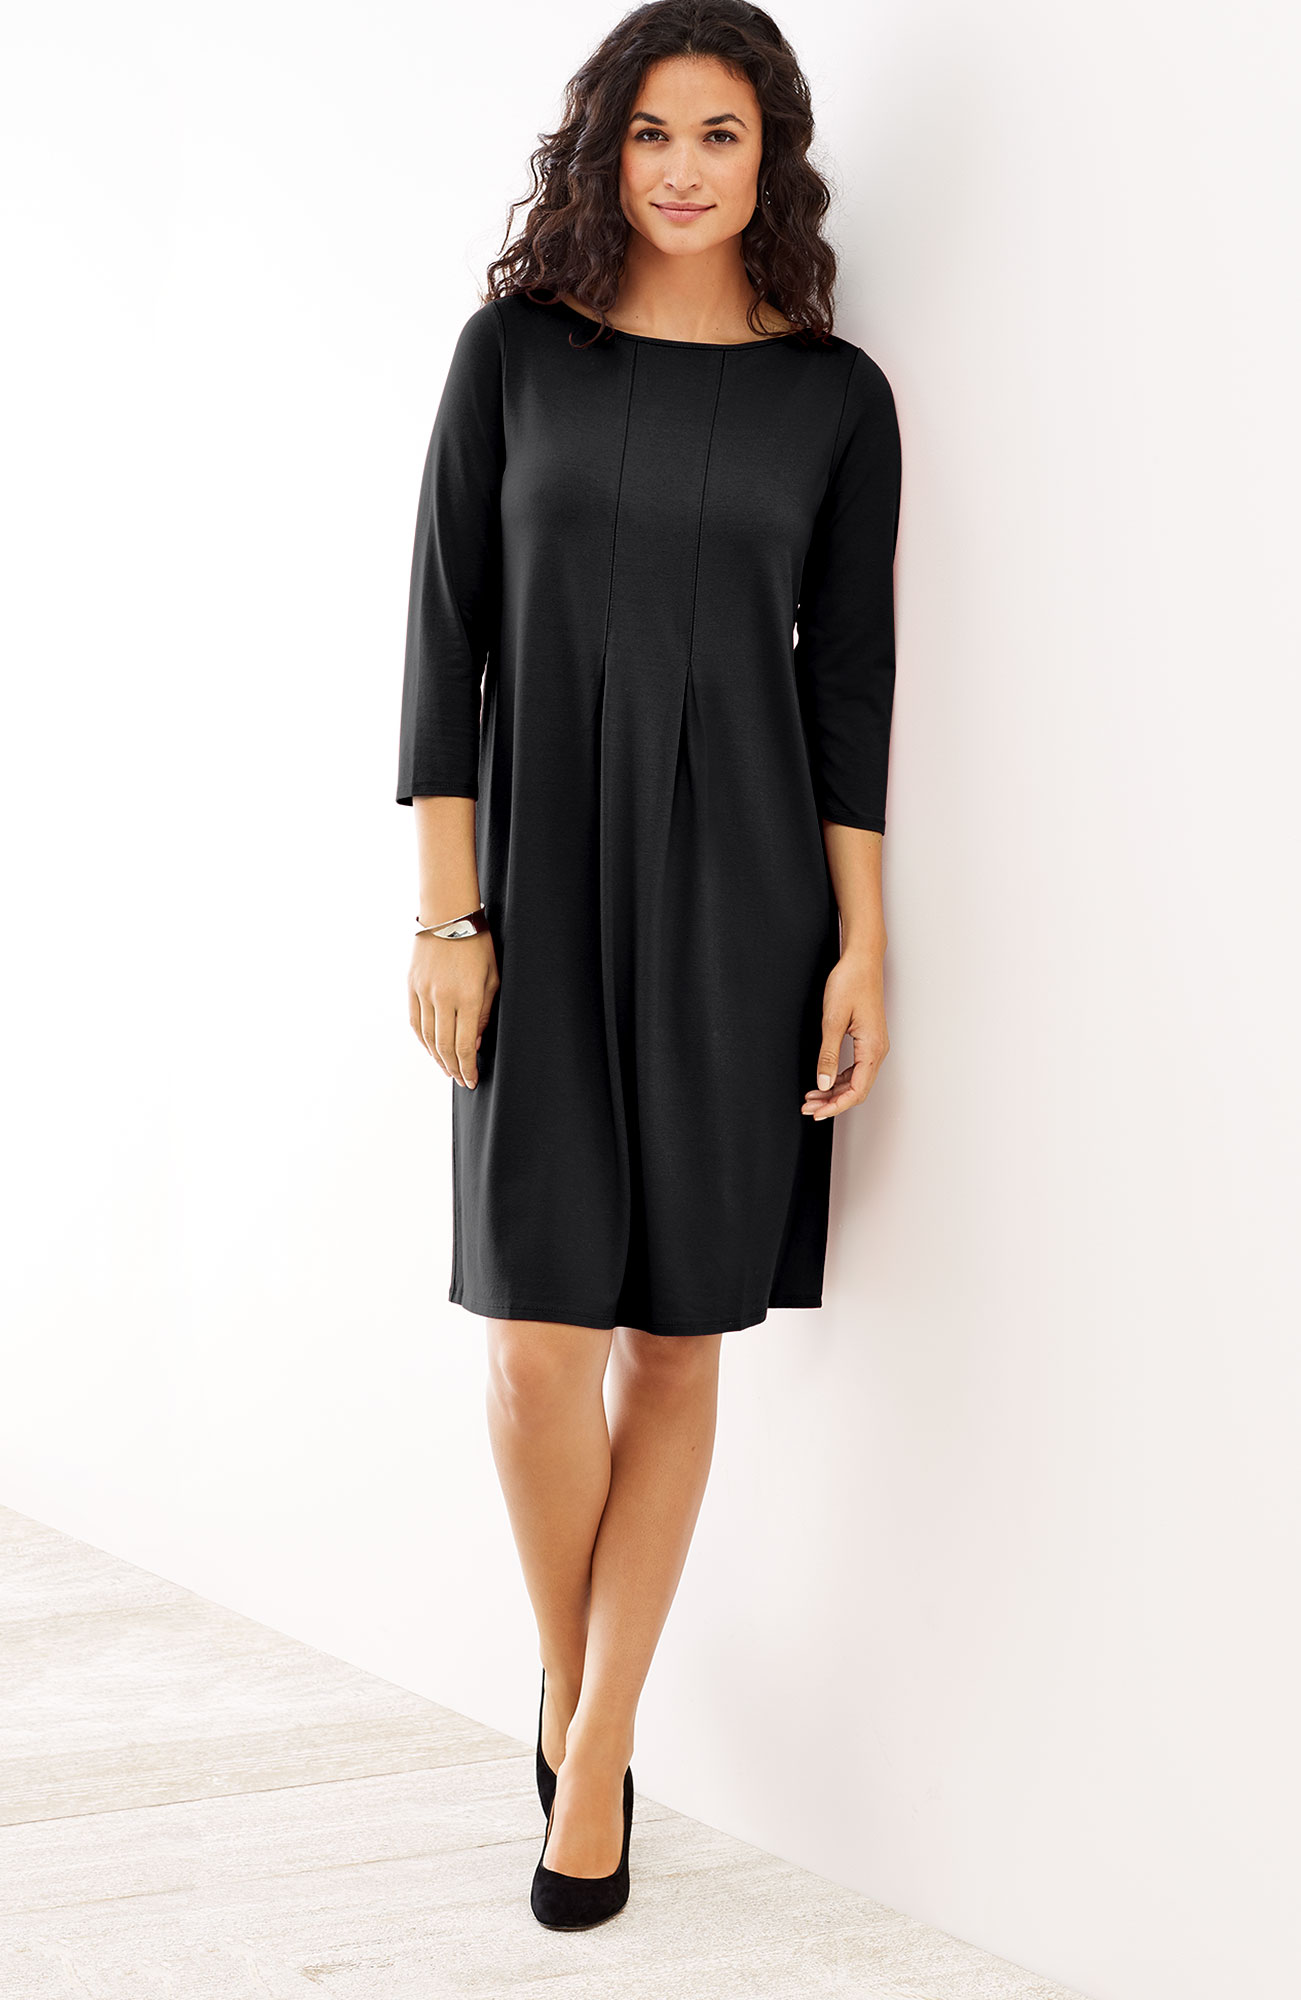 Wearever center-pleat dress